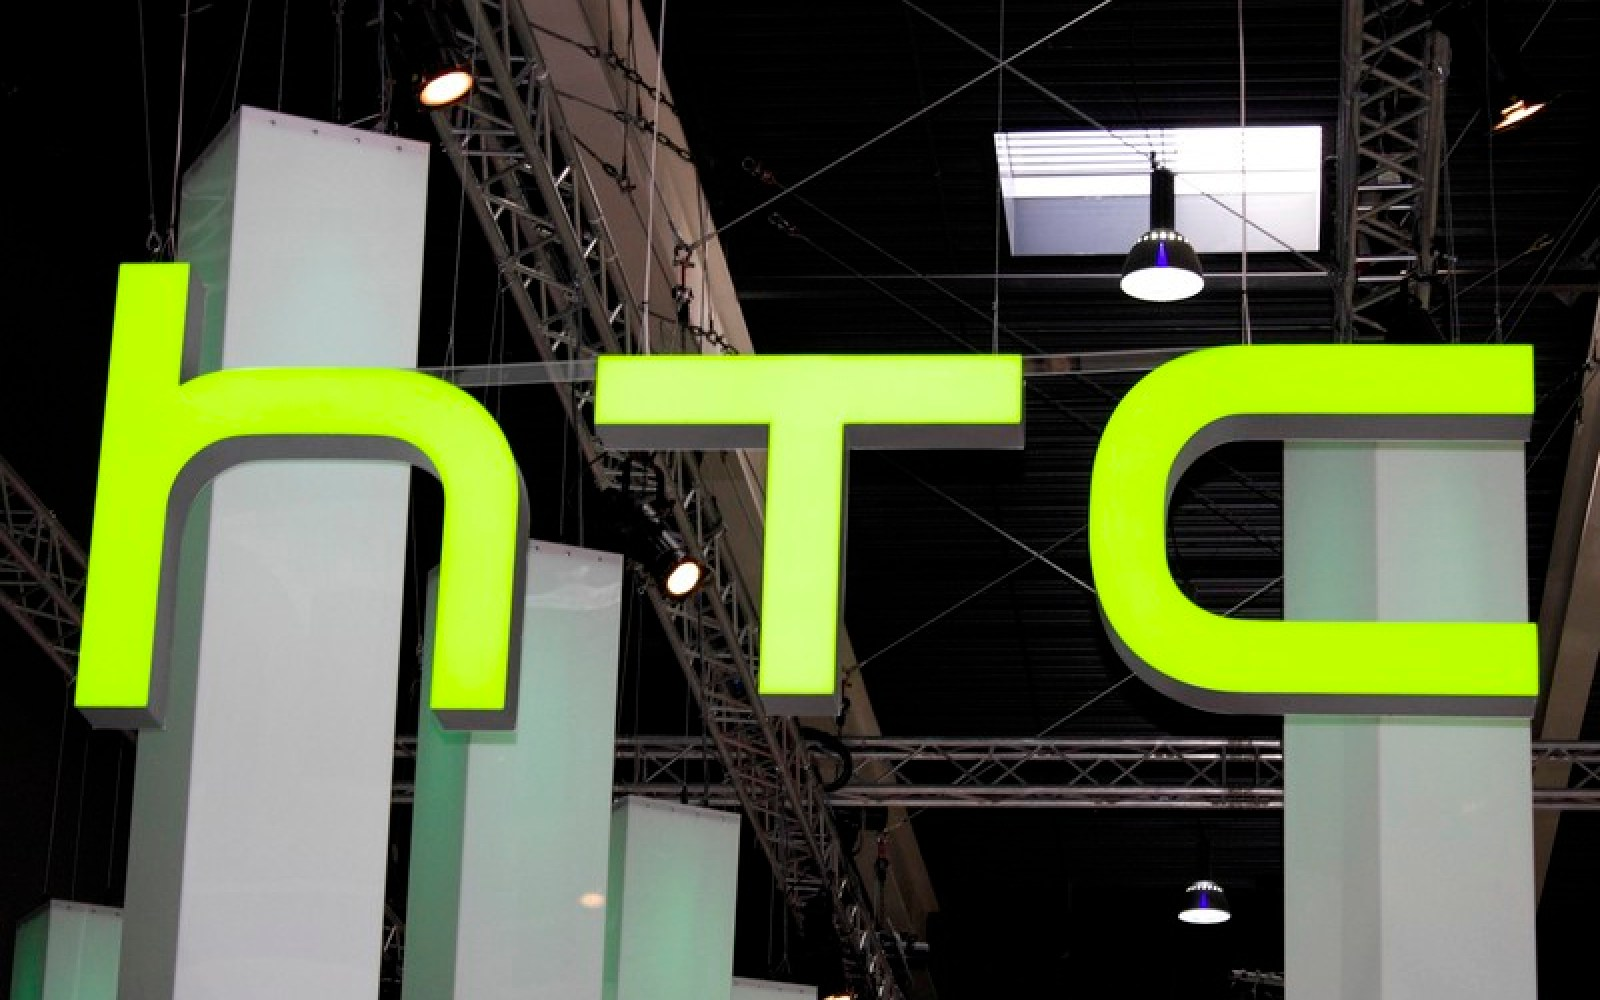 HTC will reportedly produce Google's 8-inch Nexus tablet